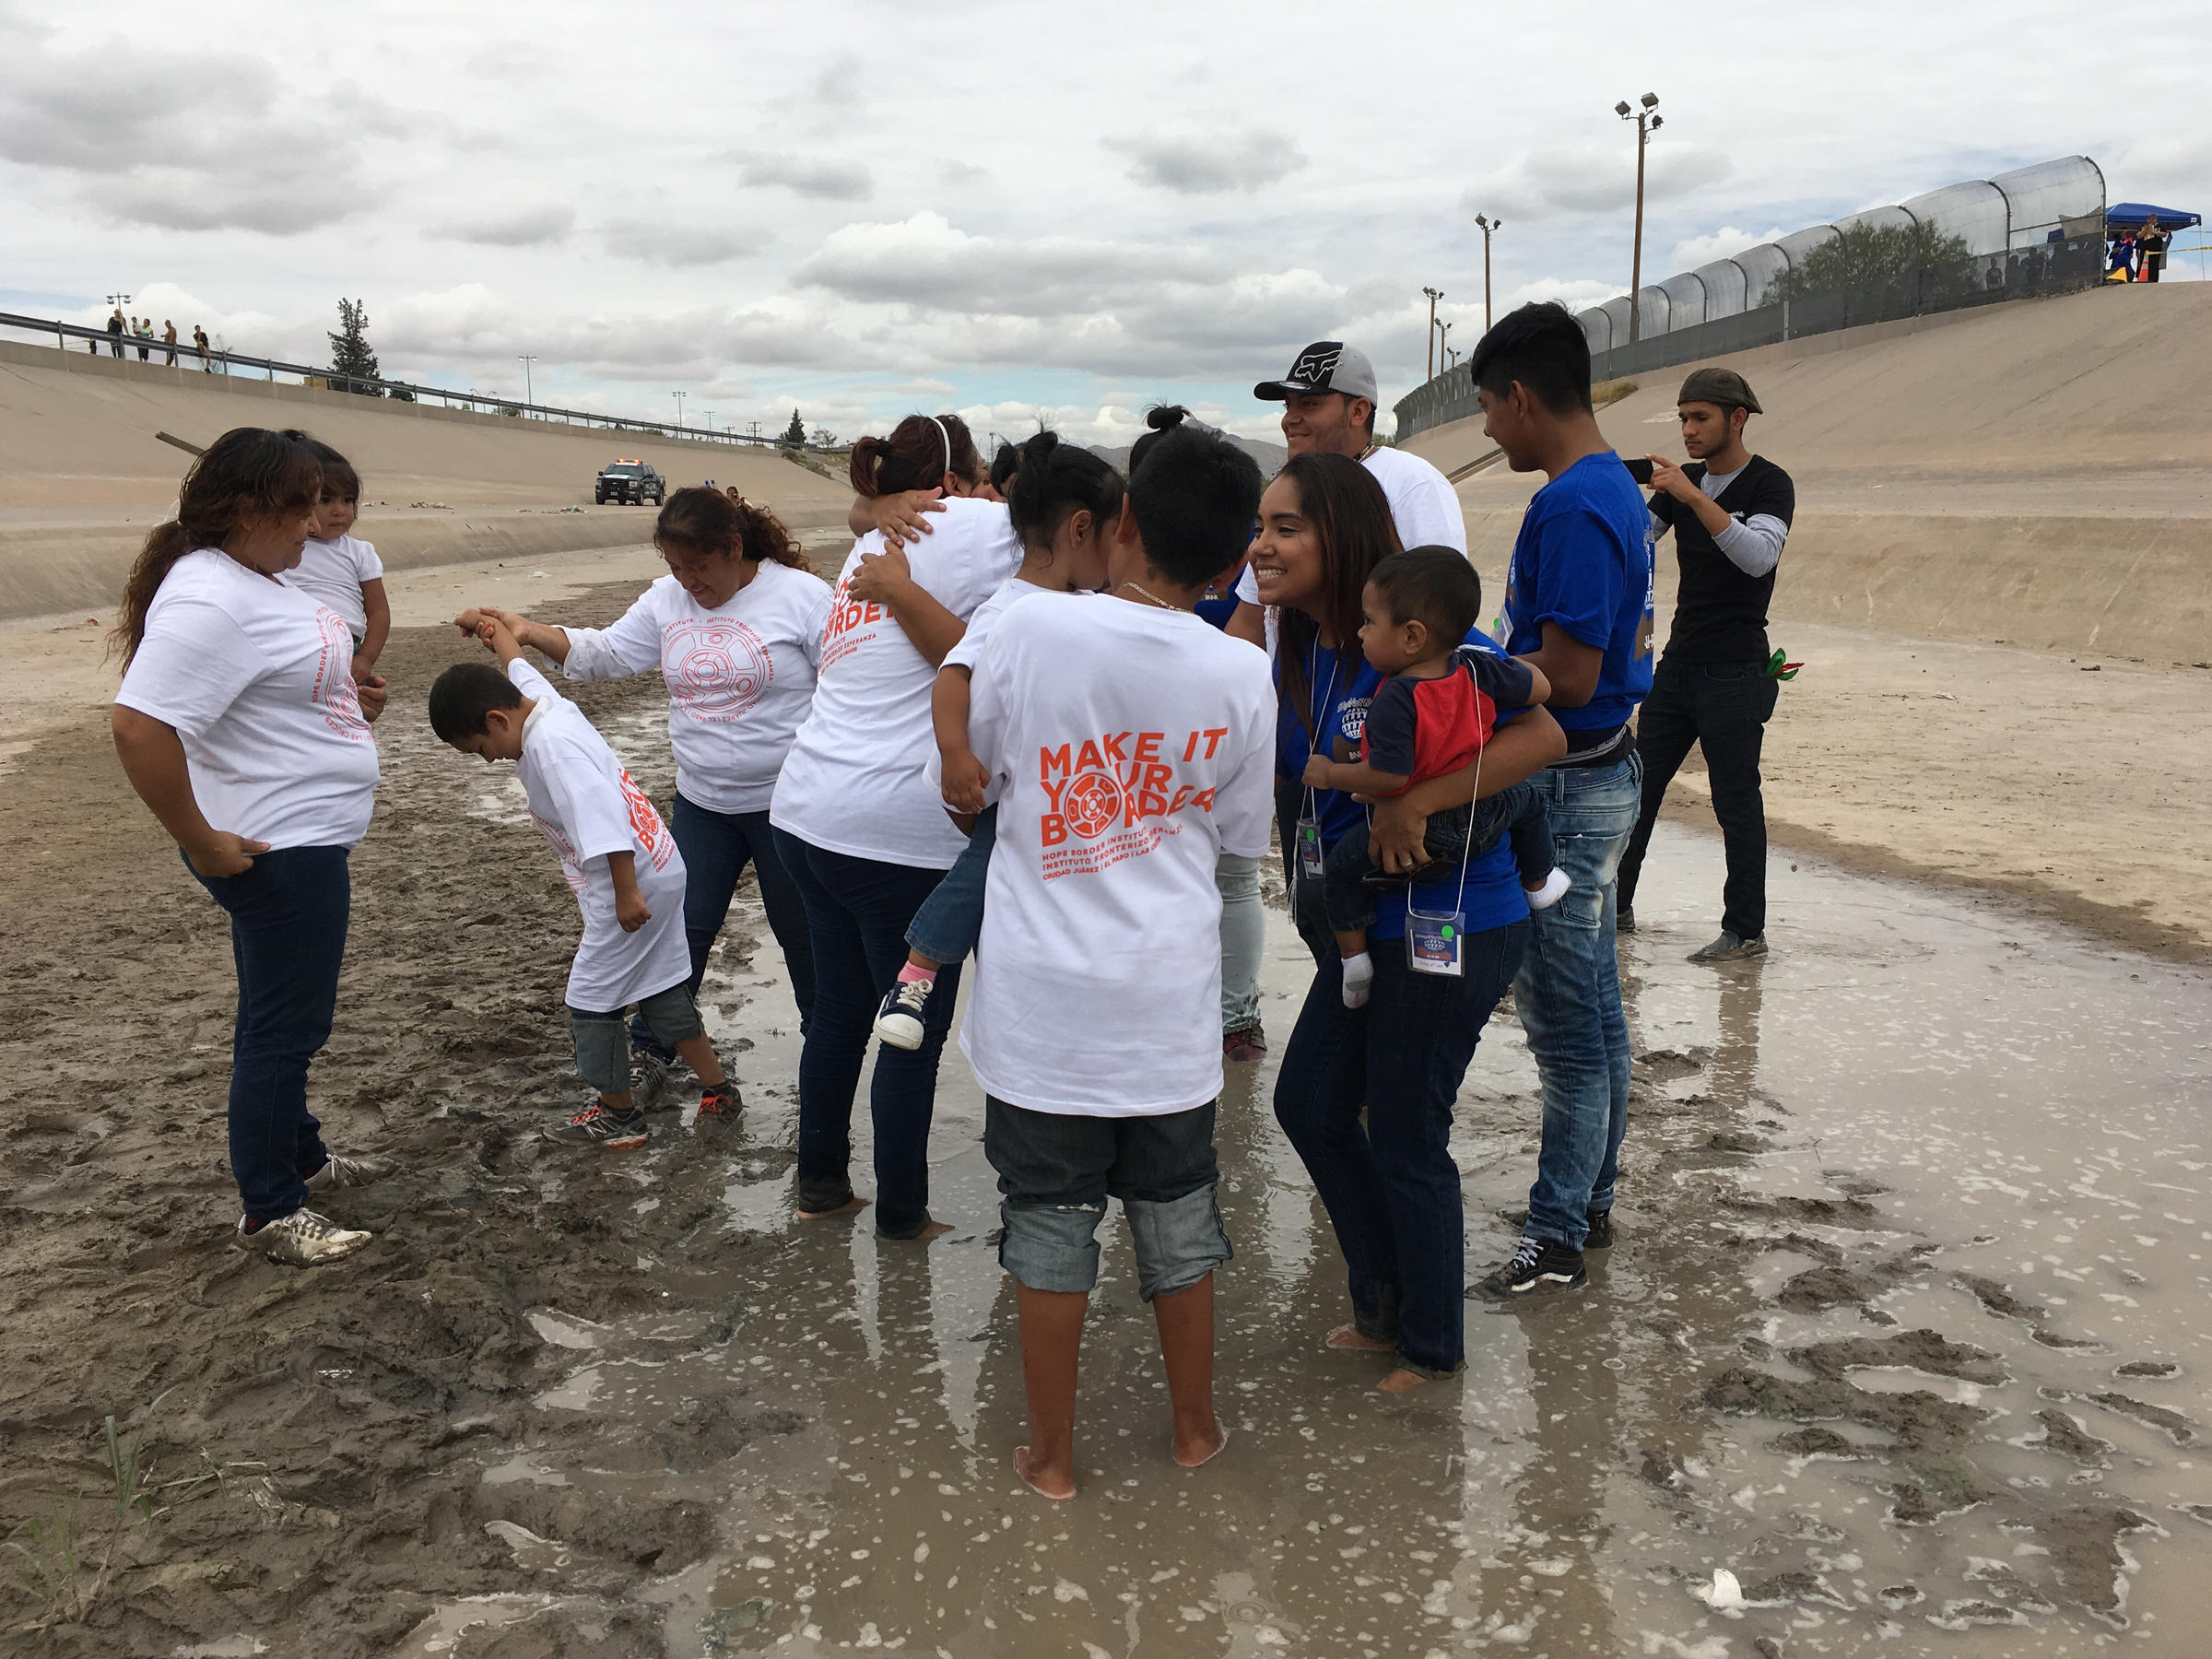 Families were reunited briefly in the Rio Grande River Wednesday Aug. 10. (PHOTO: krwg.org)